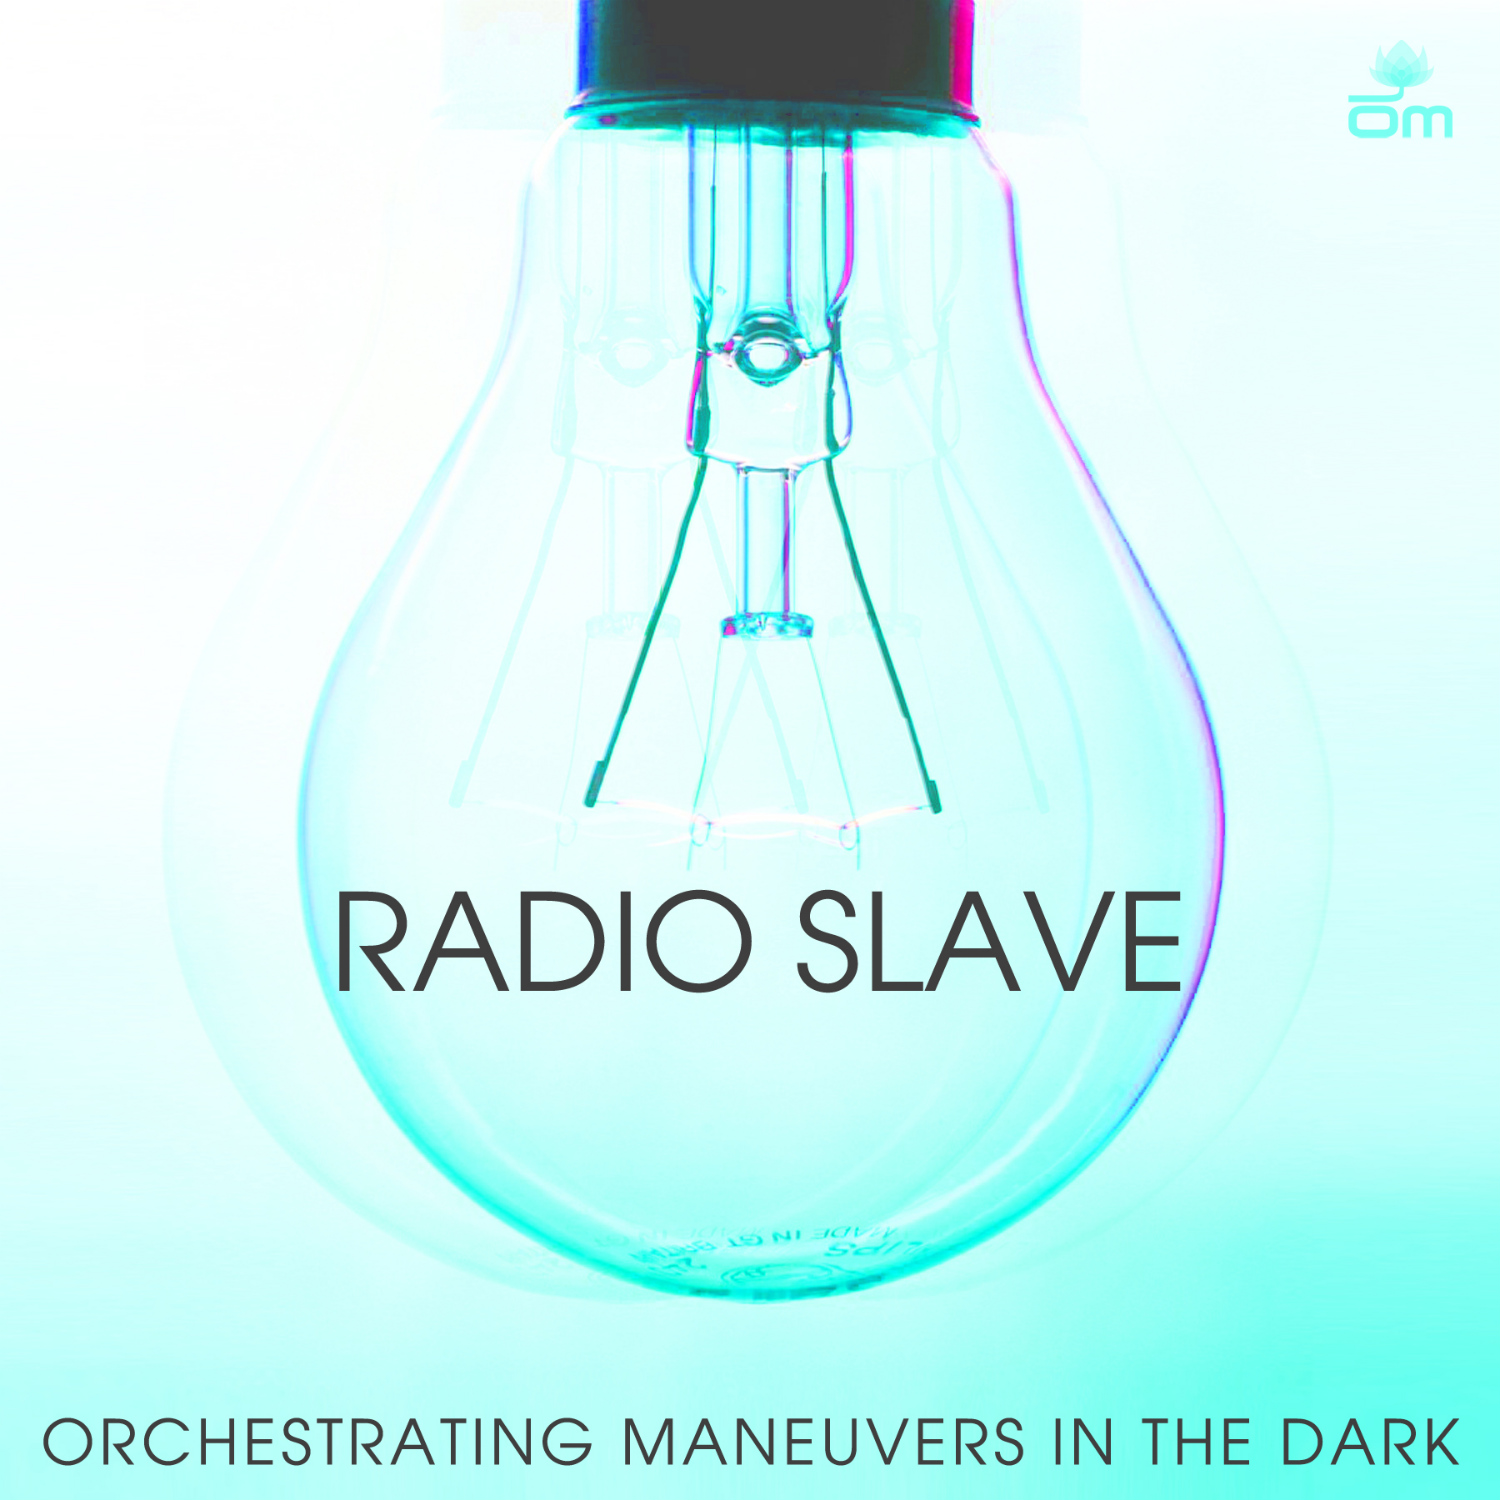 Radio Slave - Orchestrating Maneuvers in the Dark